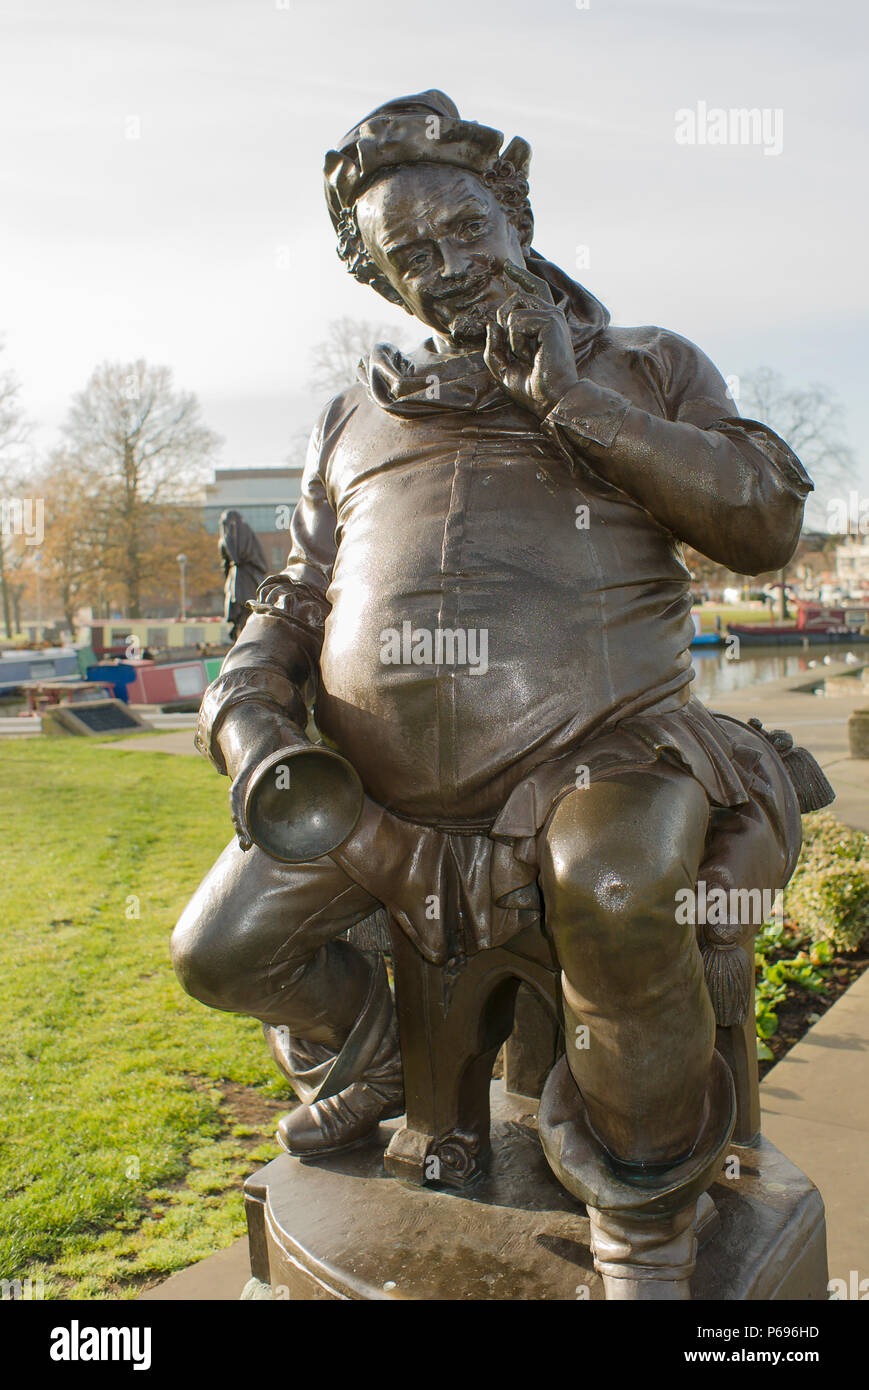 Statue of Falstaff, a Shakespearean character, in the Bancroft Gardens Stratford on Avon England UK - Stock Image